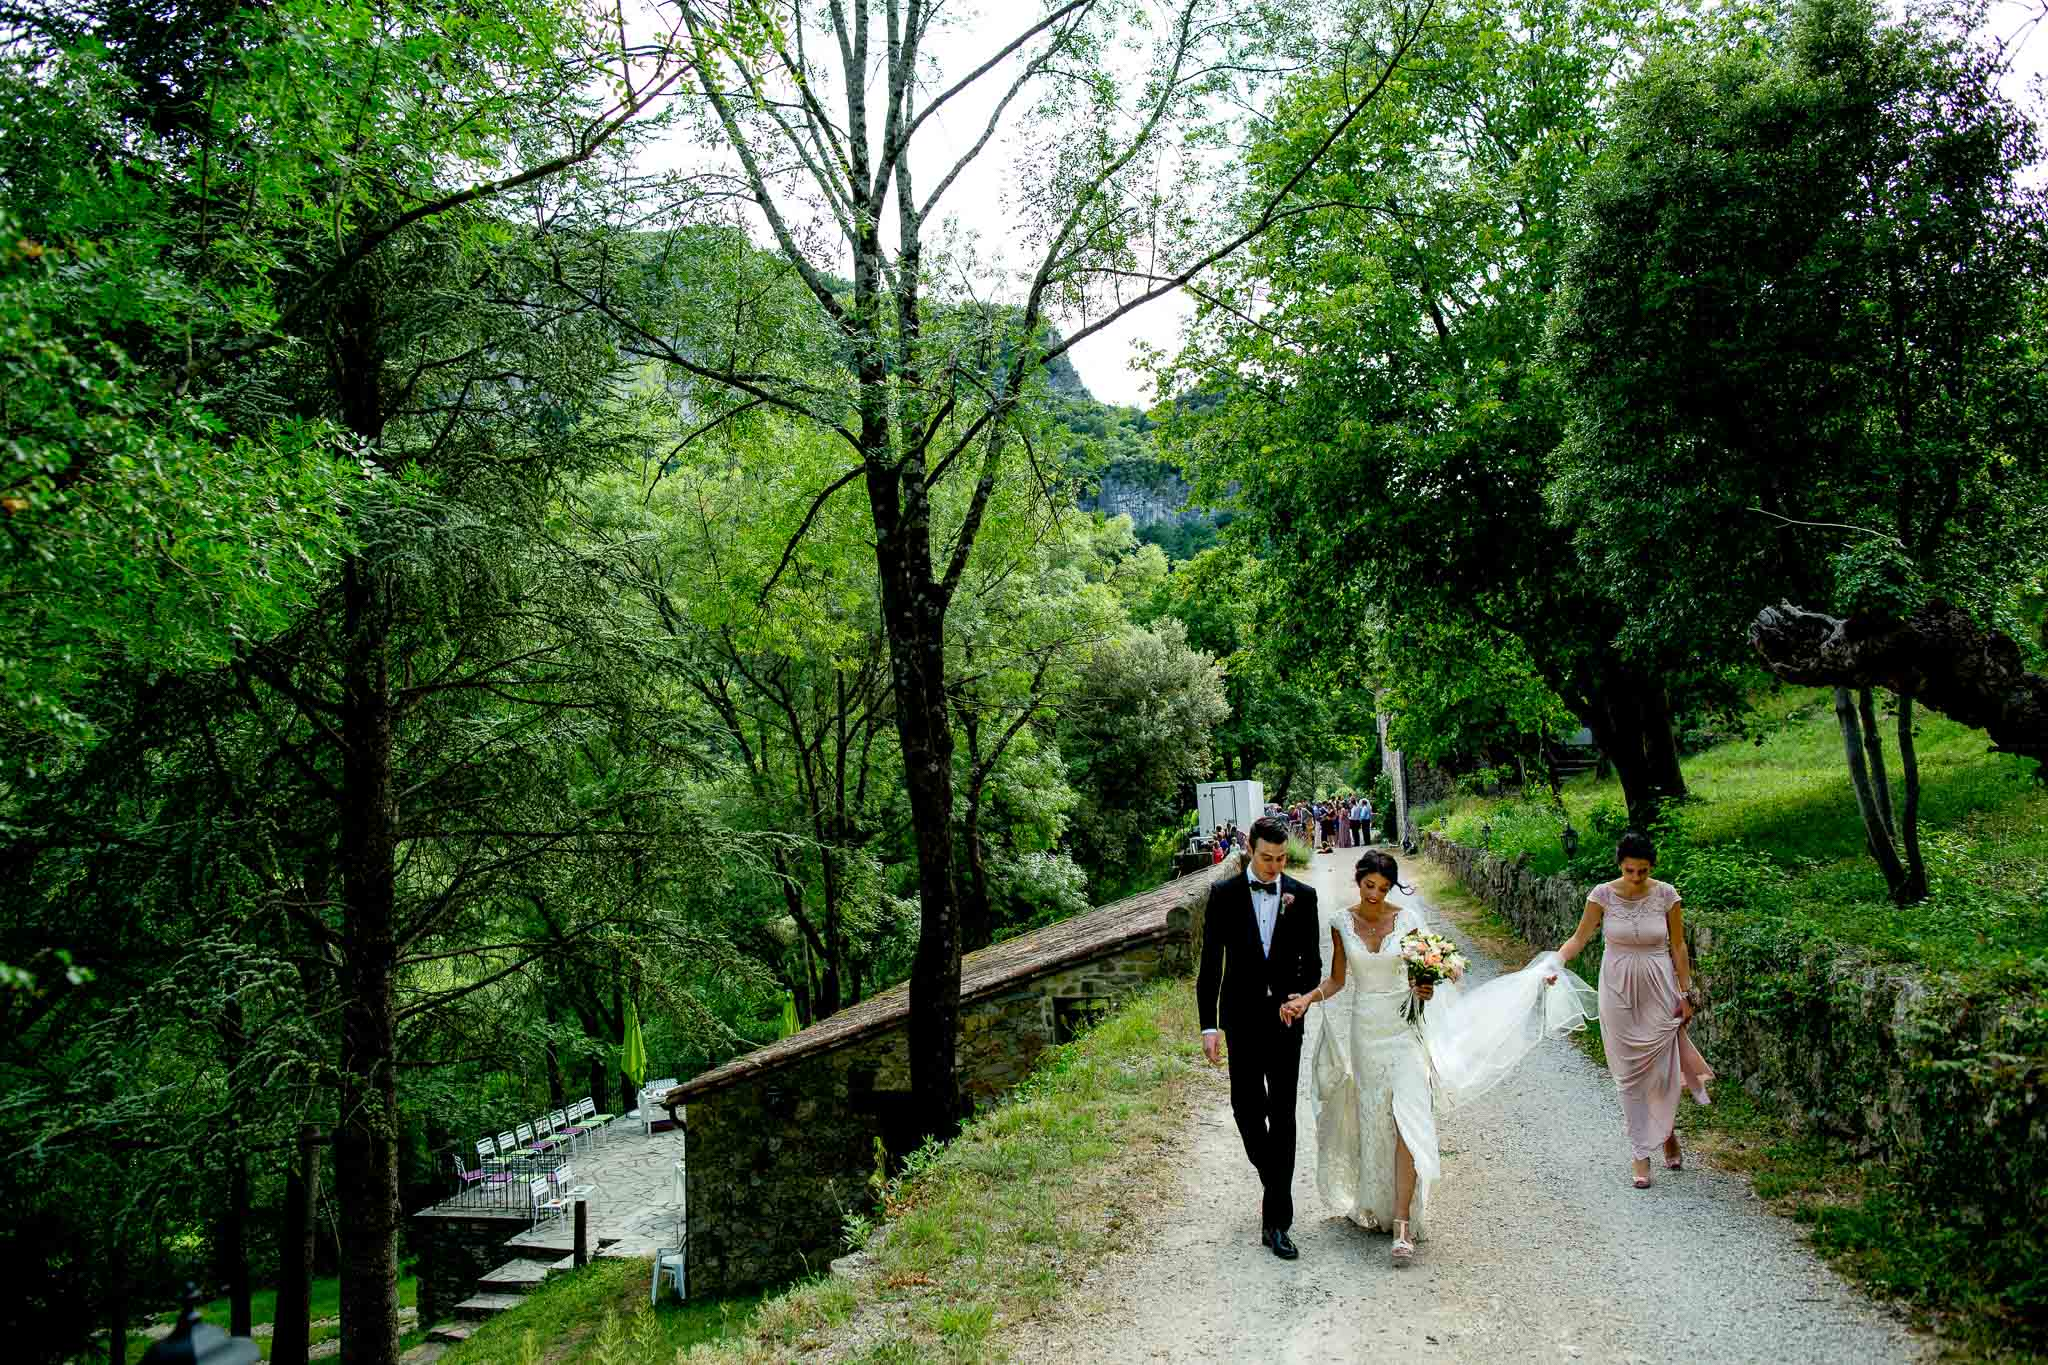 Bride and Groom walkin at chateau wedding in Cirque de Navacelles outside Montpellier France